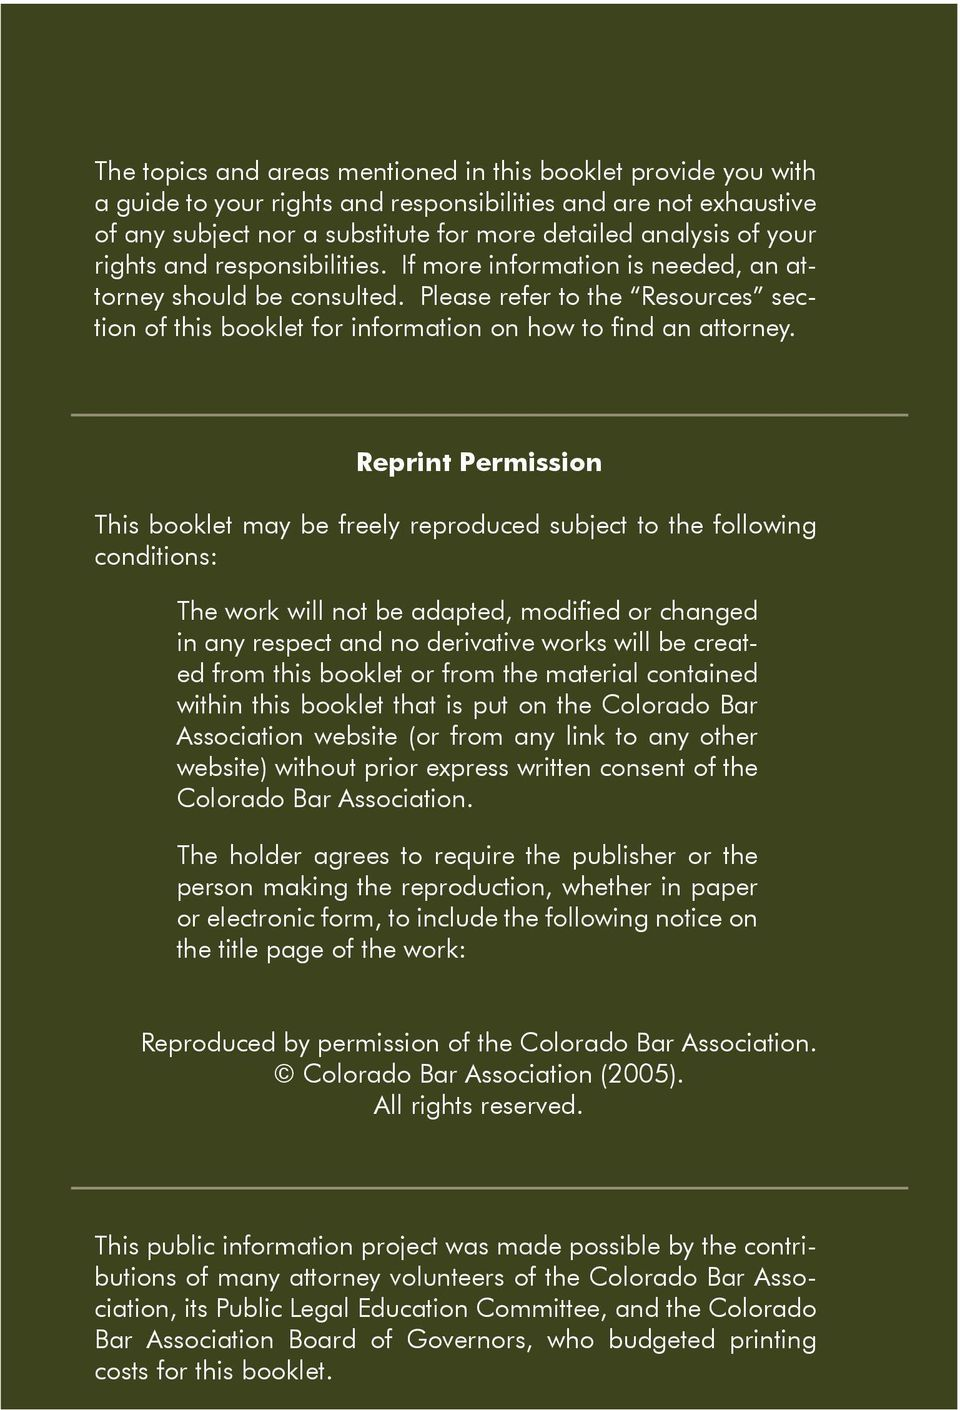 Reprint Permission This booklet may be freely reproduced subject to the following conditions: The work will not be adapted, modified or changed in any respect and no derivative works will be created